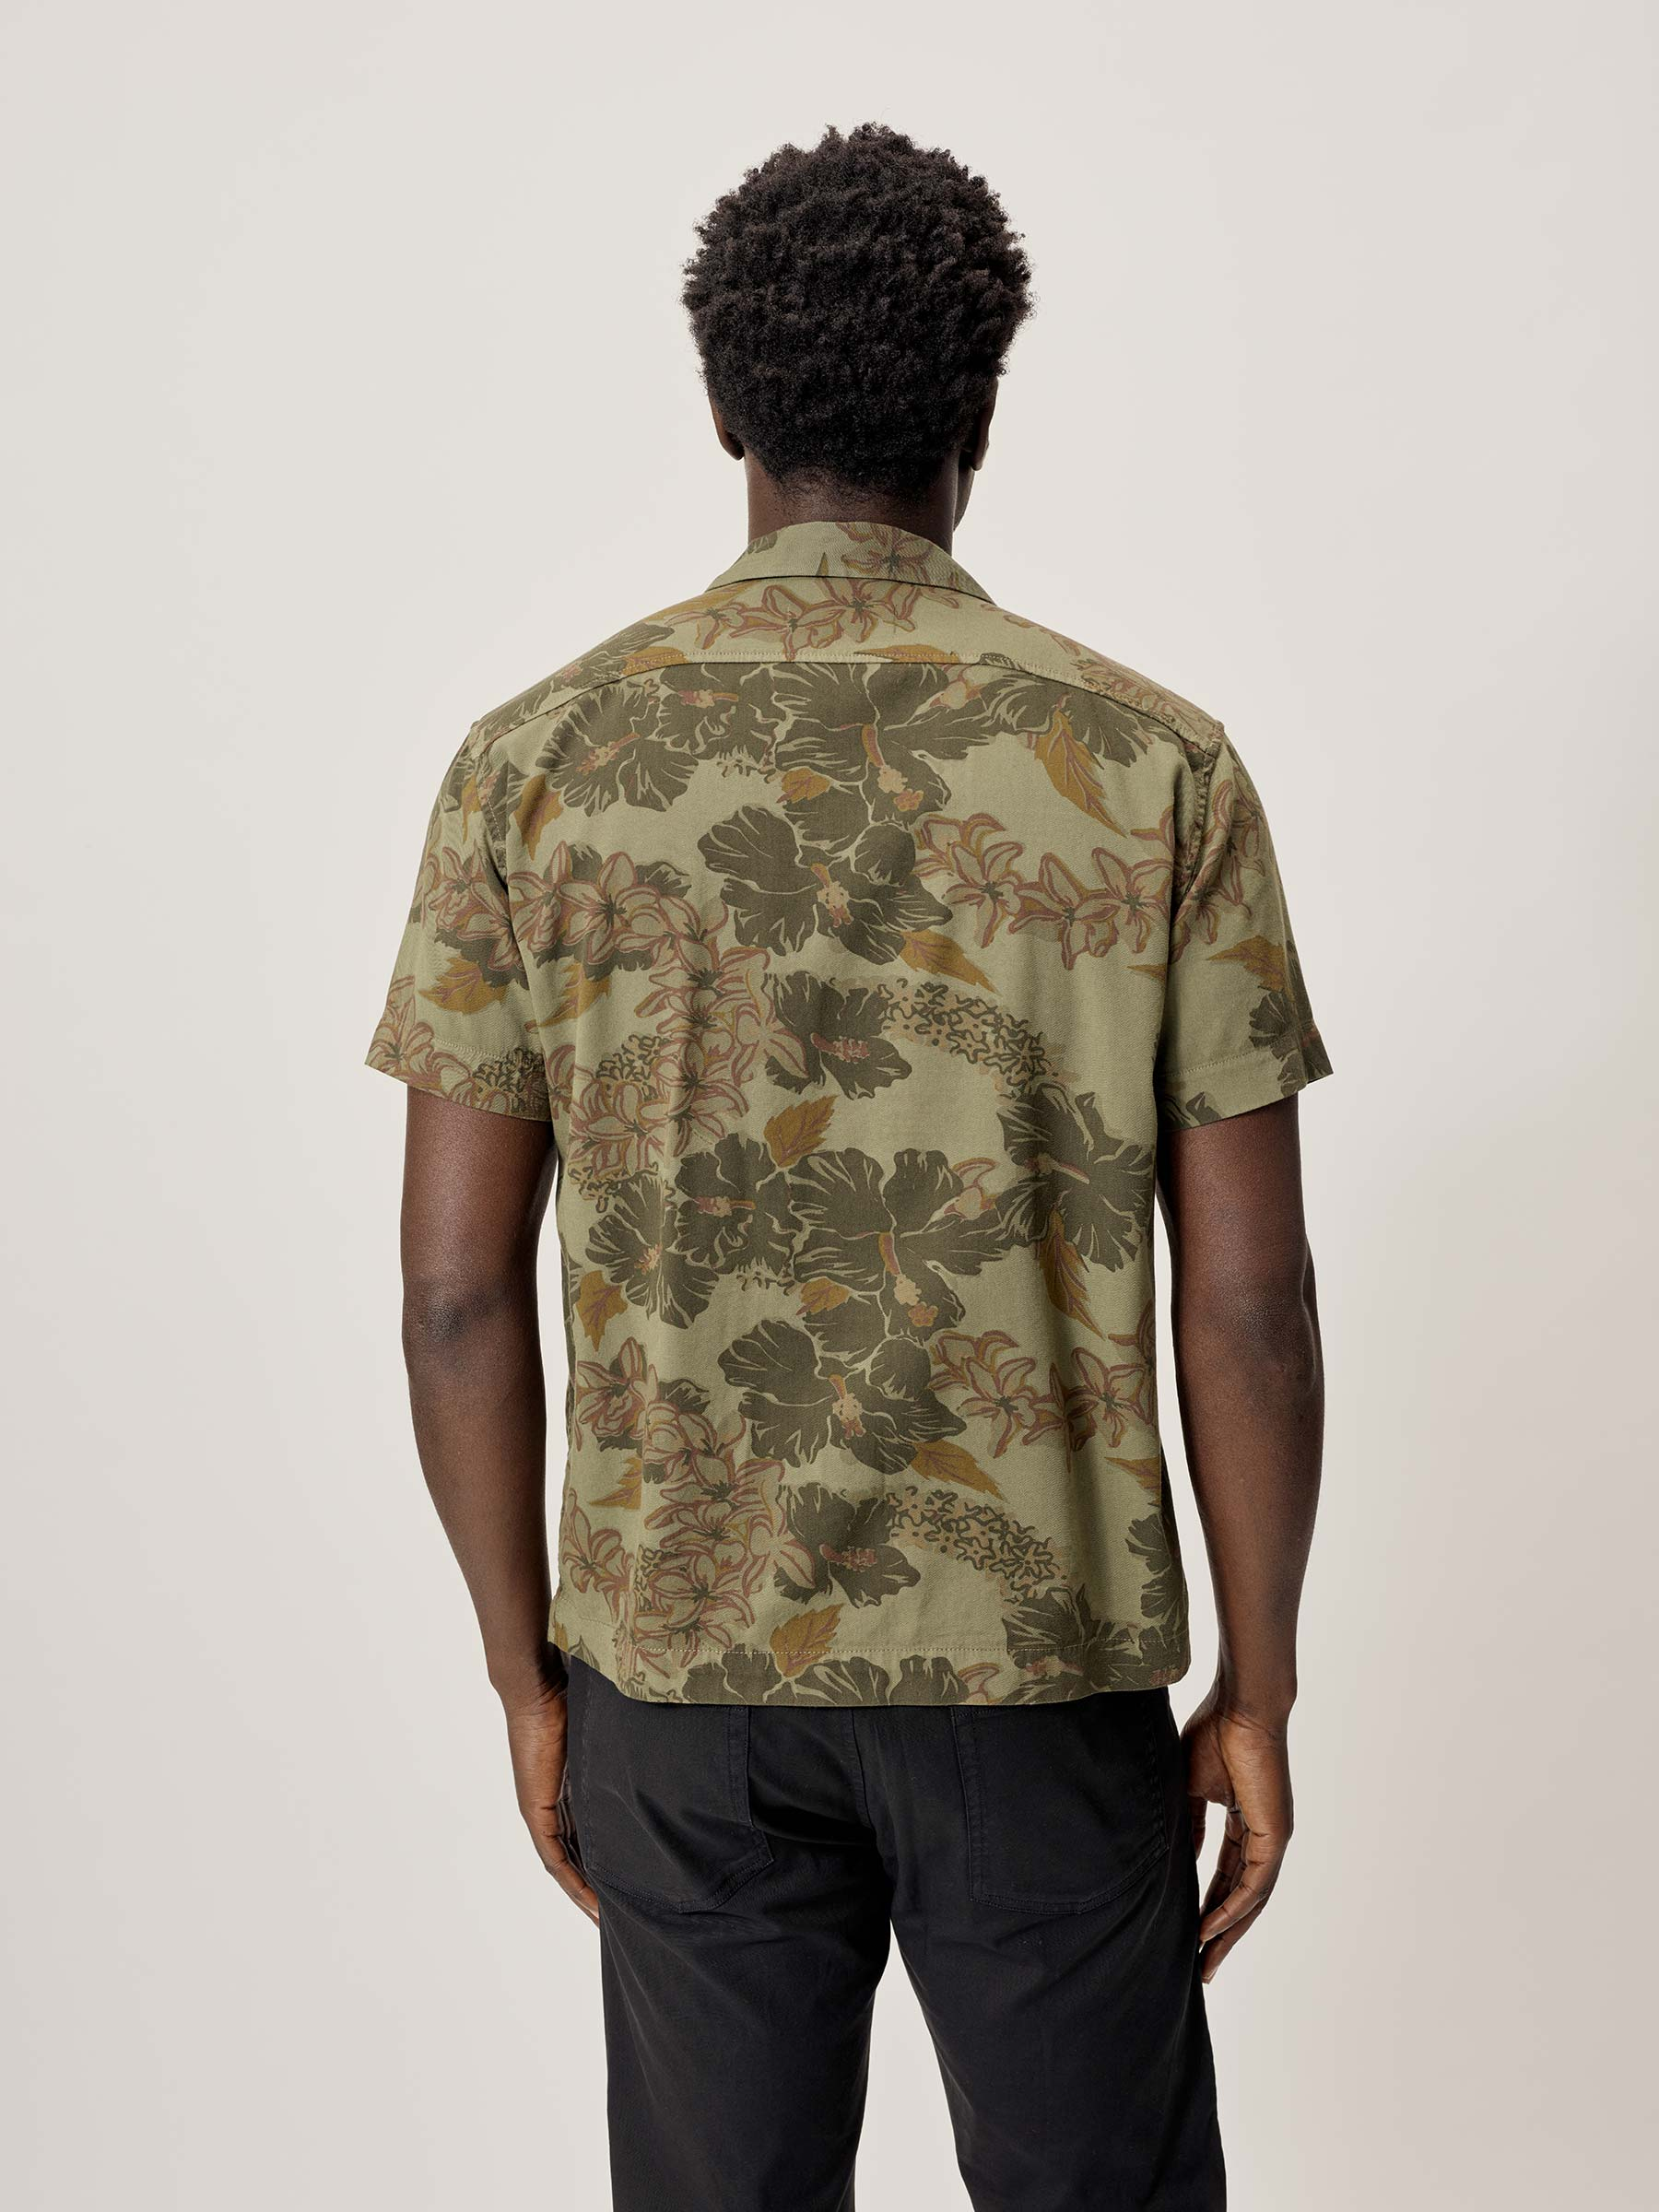 Buck Mason - Kauai Draped Twill Short Sleeve Vintage Camp Shirt